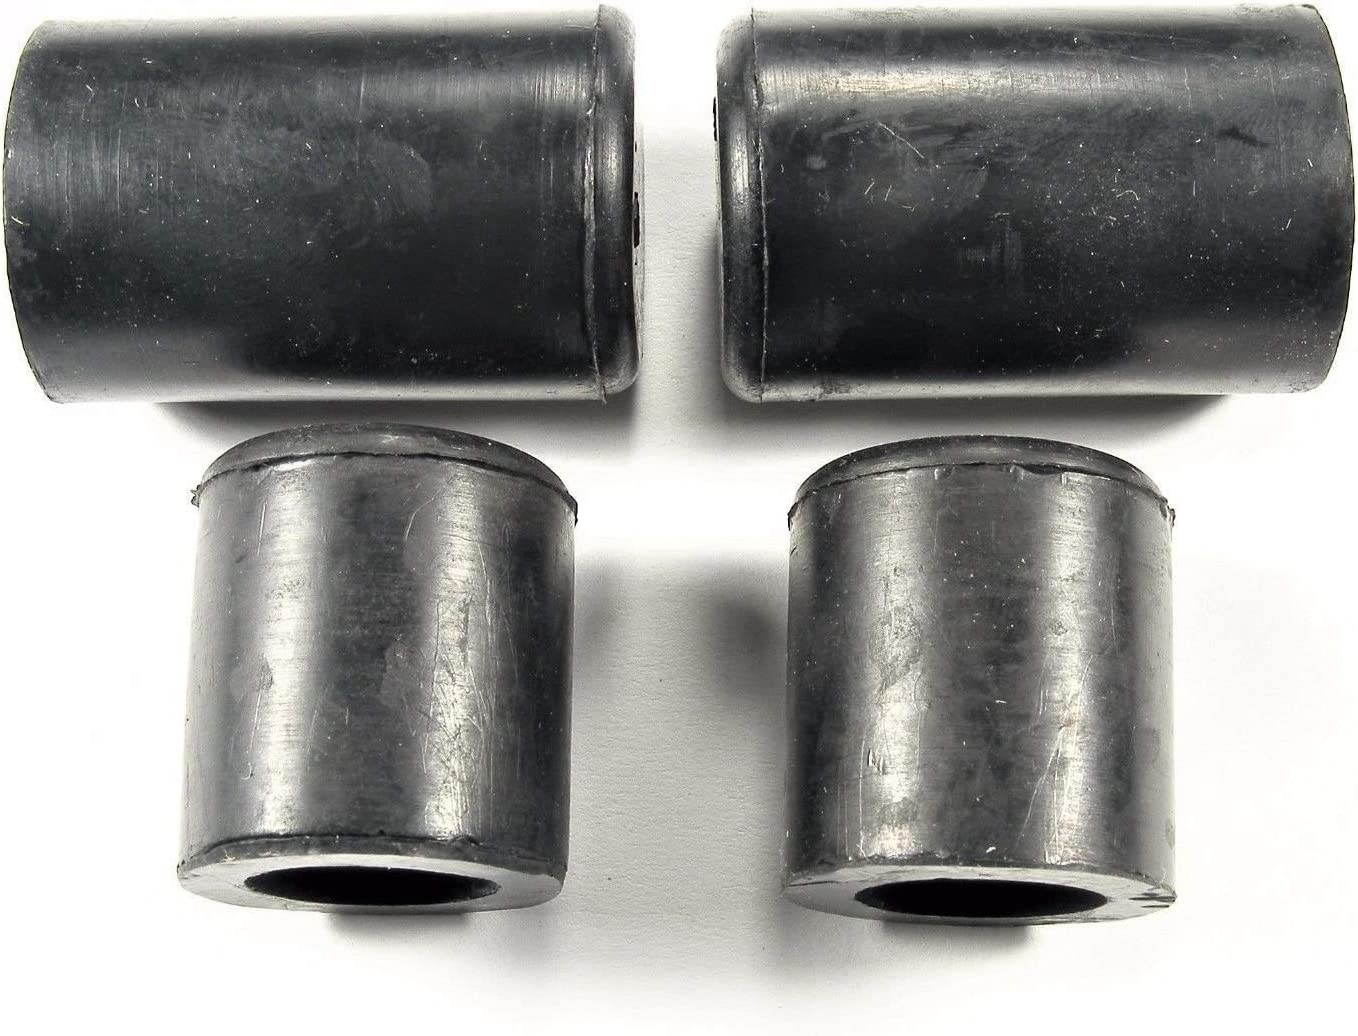 #039 Online Auto Supply For AMC Heater Core Bypass Caps Qty.4 Fits 5//8 /& 3//4 Hose Fittings